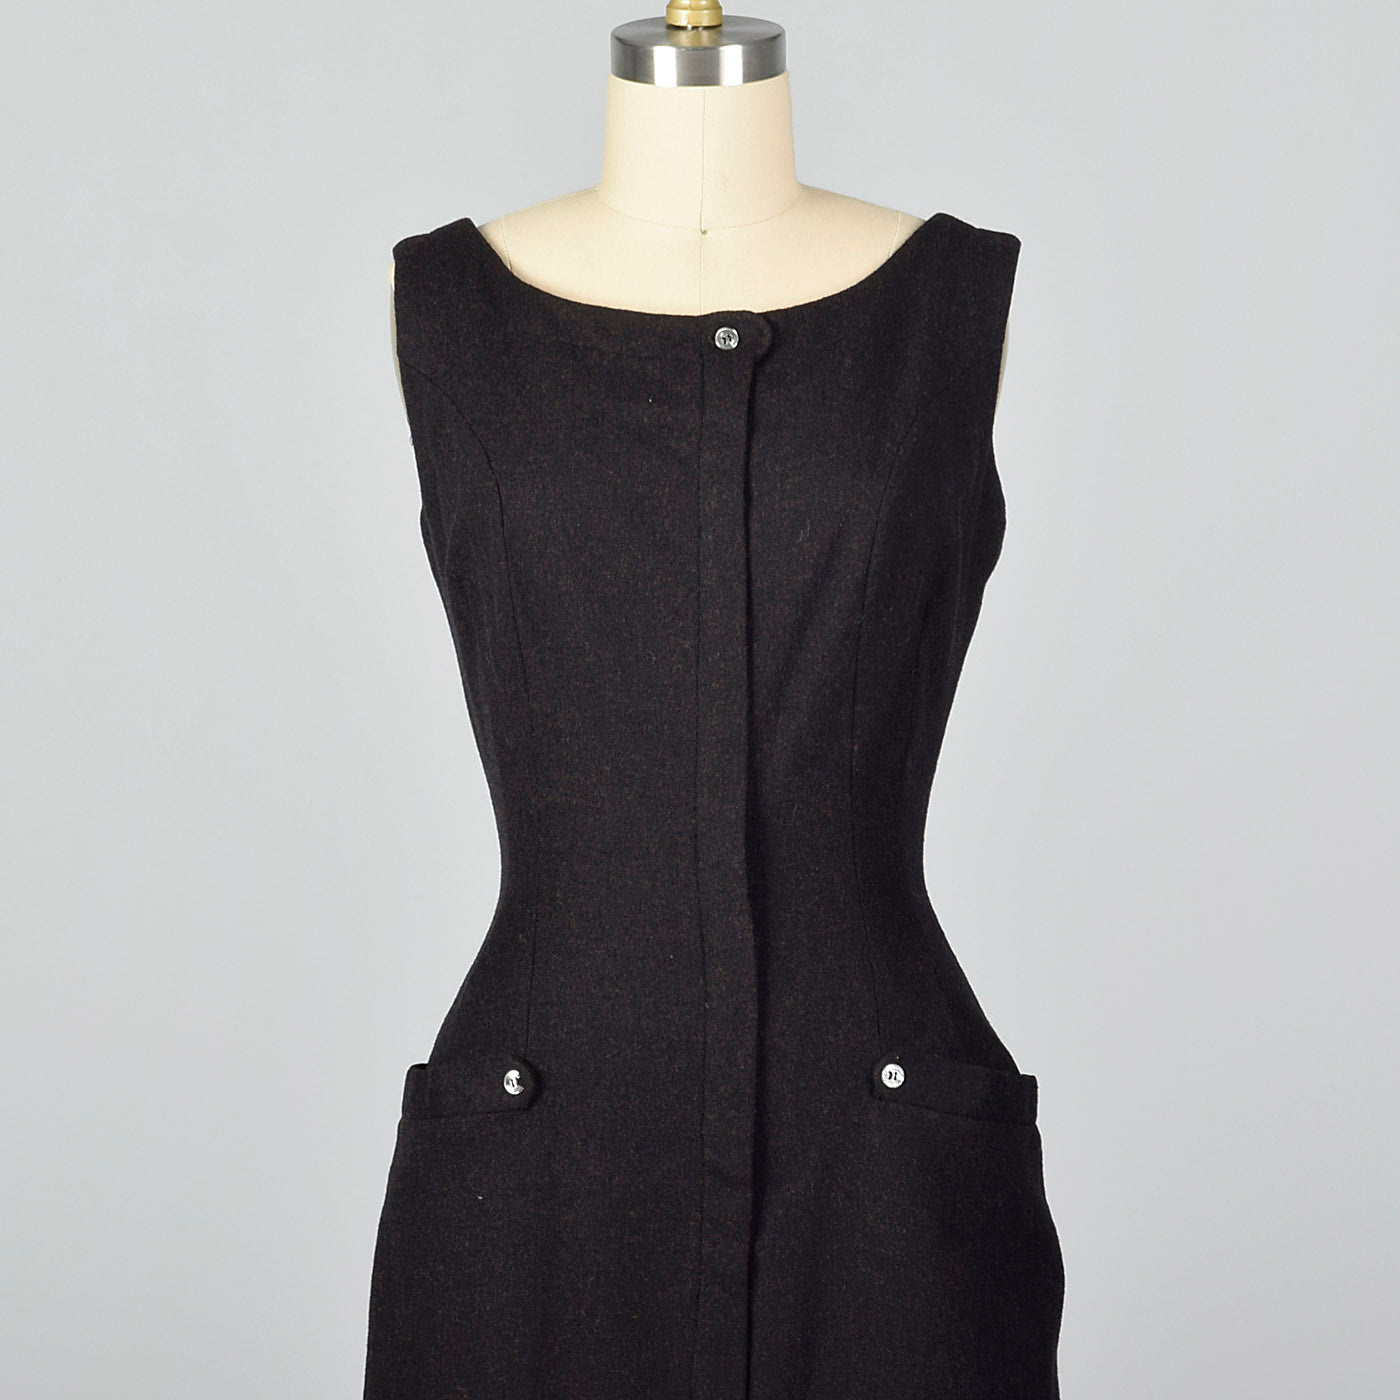 1950s Brown and Black Wool Jumper Dress